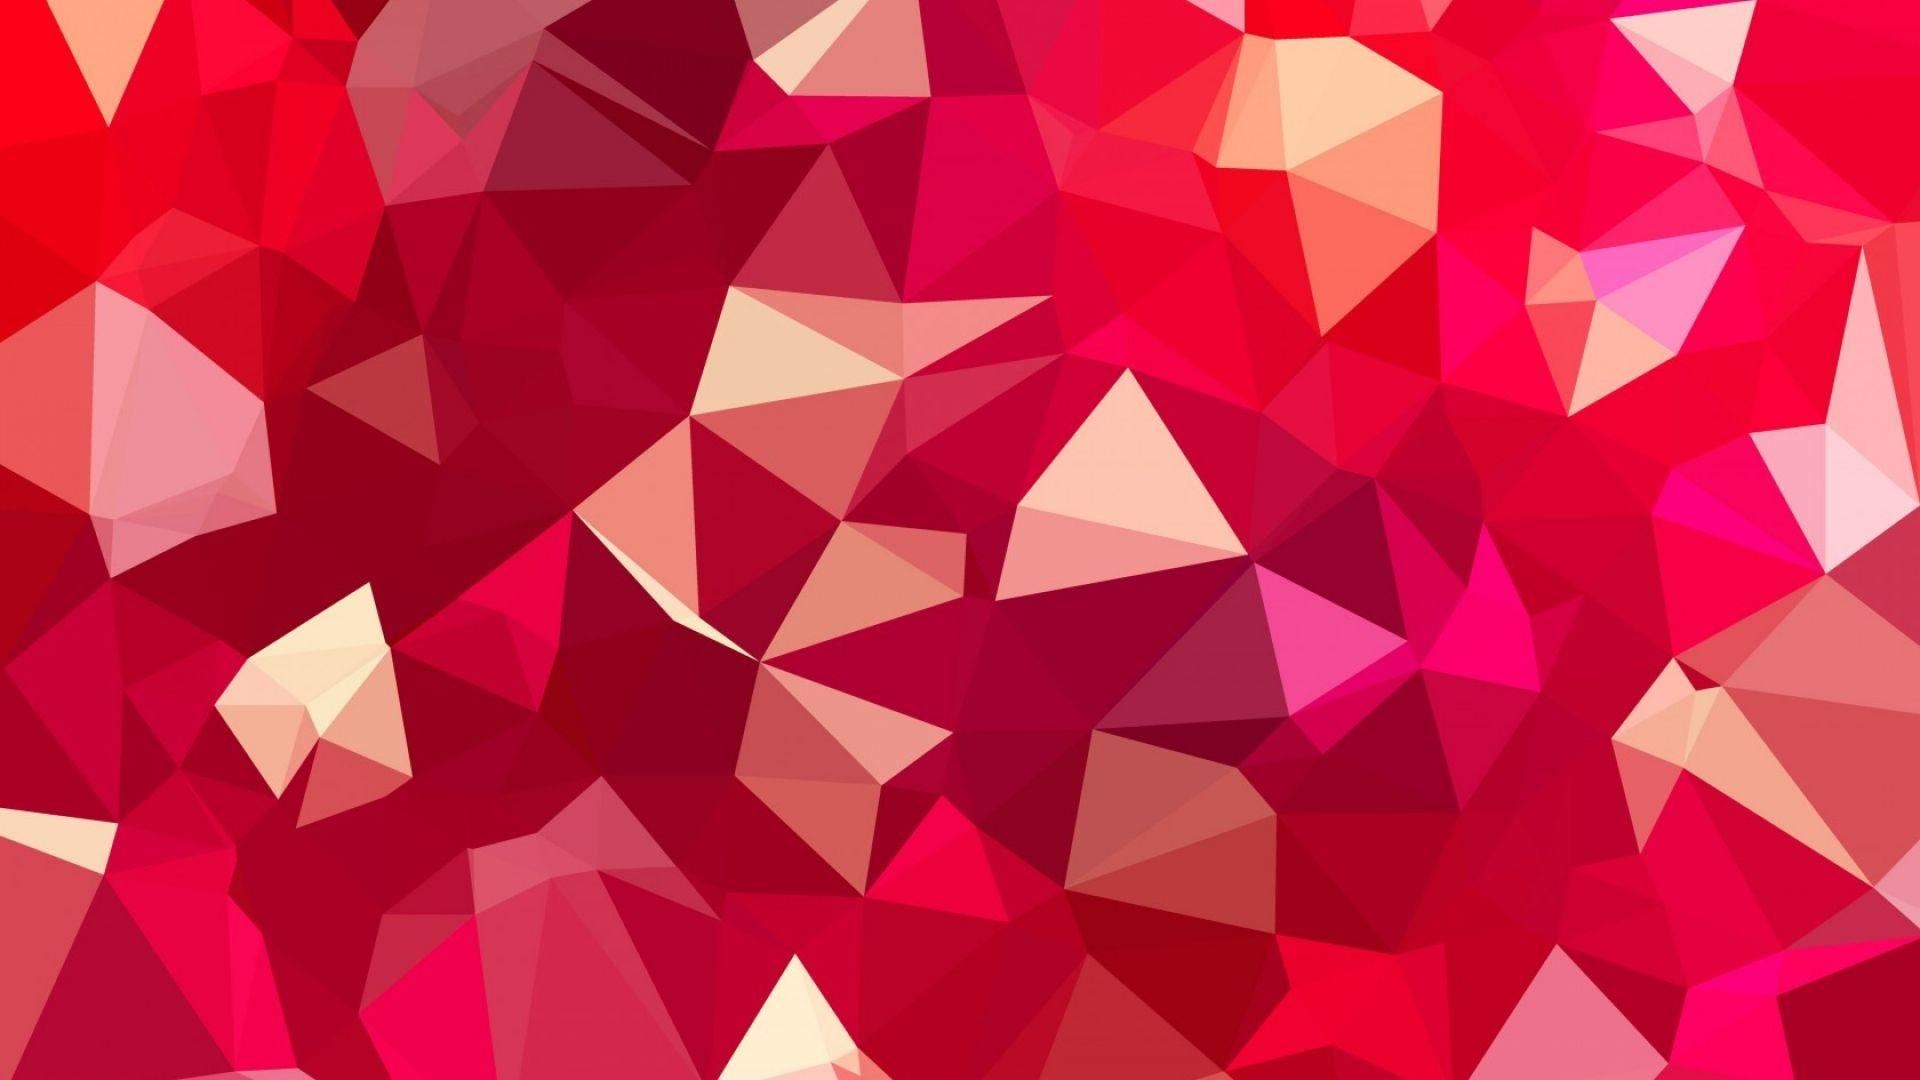 Geometry wallpapers wallpaper cave - Hd pattern wallpapers 1080p ...